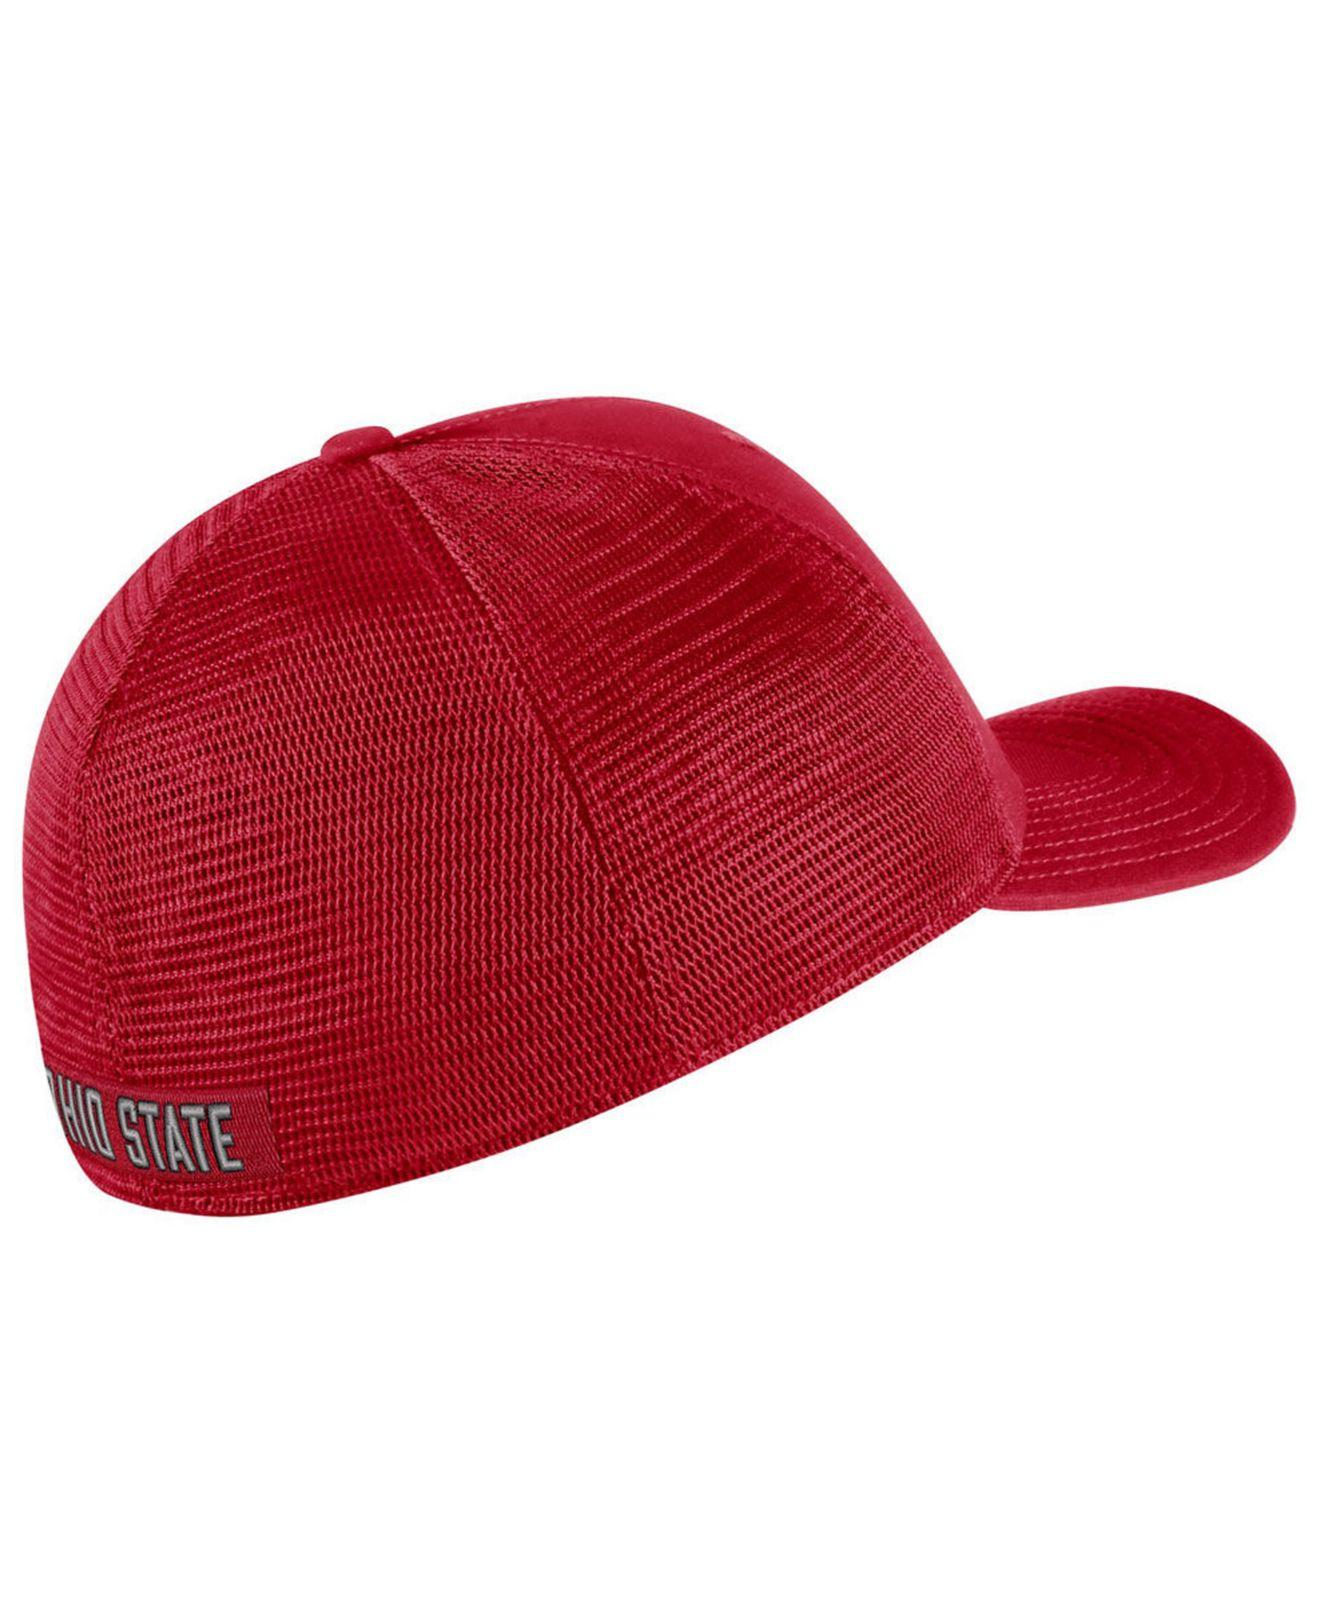 9b19a88d665034 Lyst - Nike Ohio State Buckeyes Aerobill Mesh Cap in Red for Men